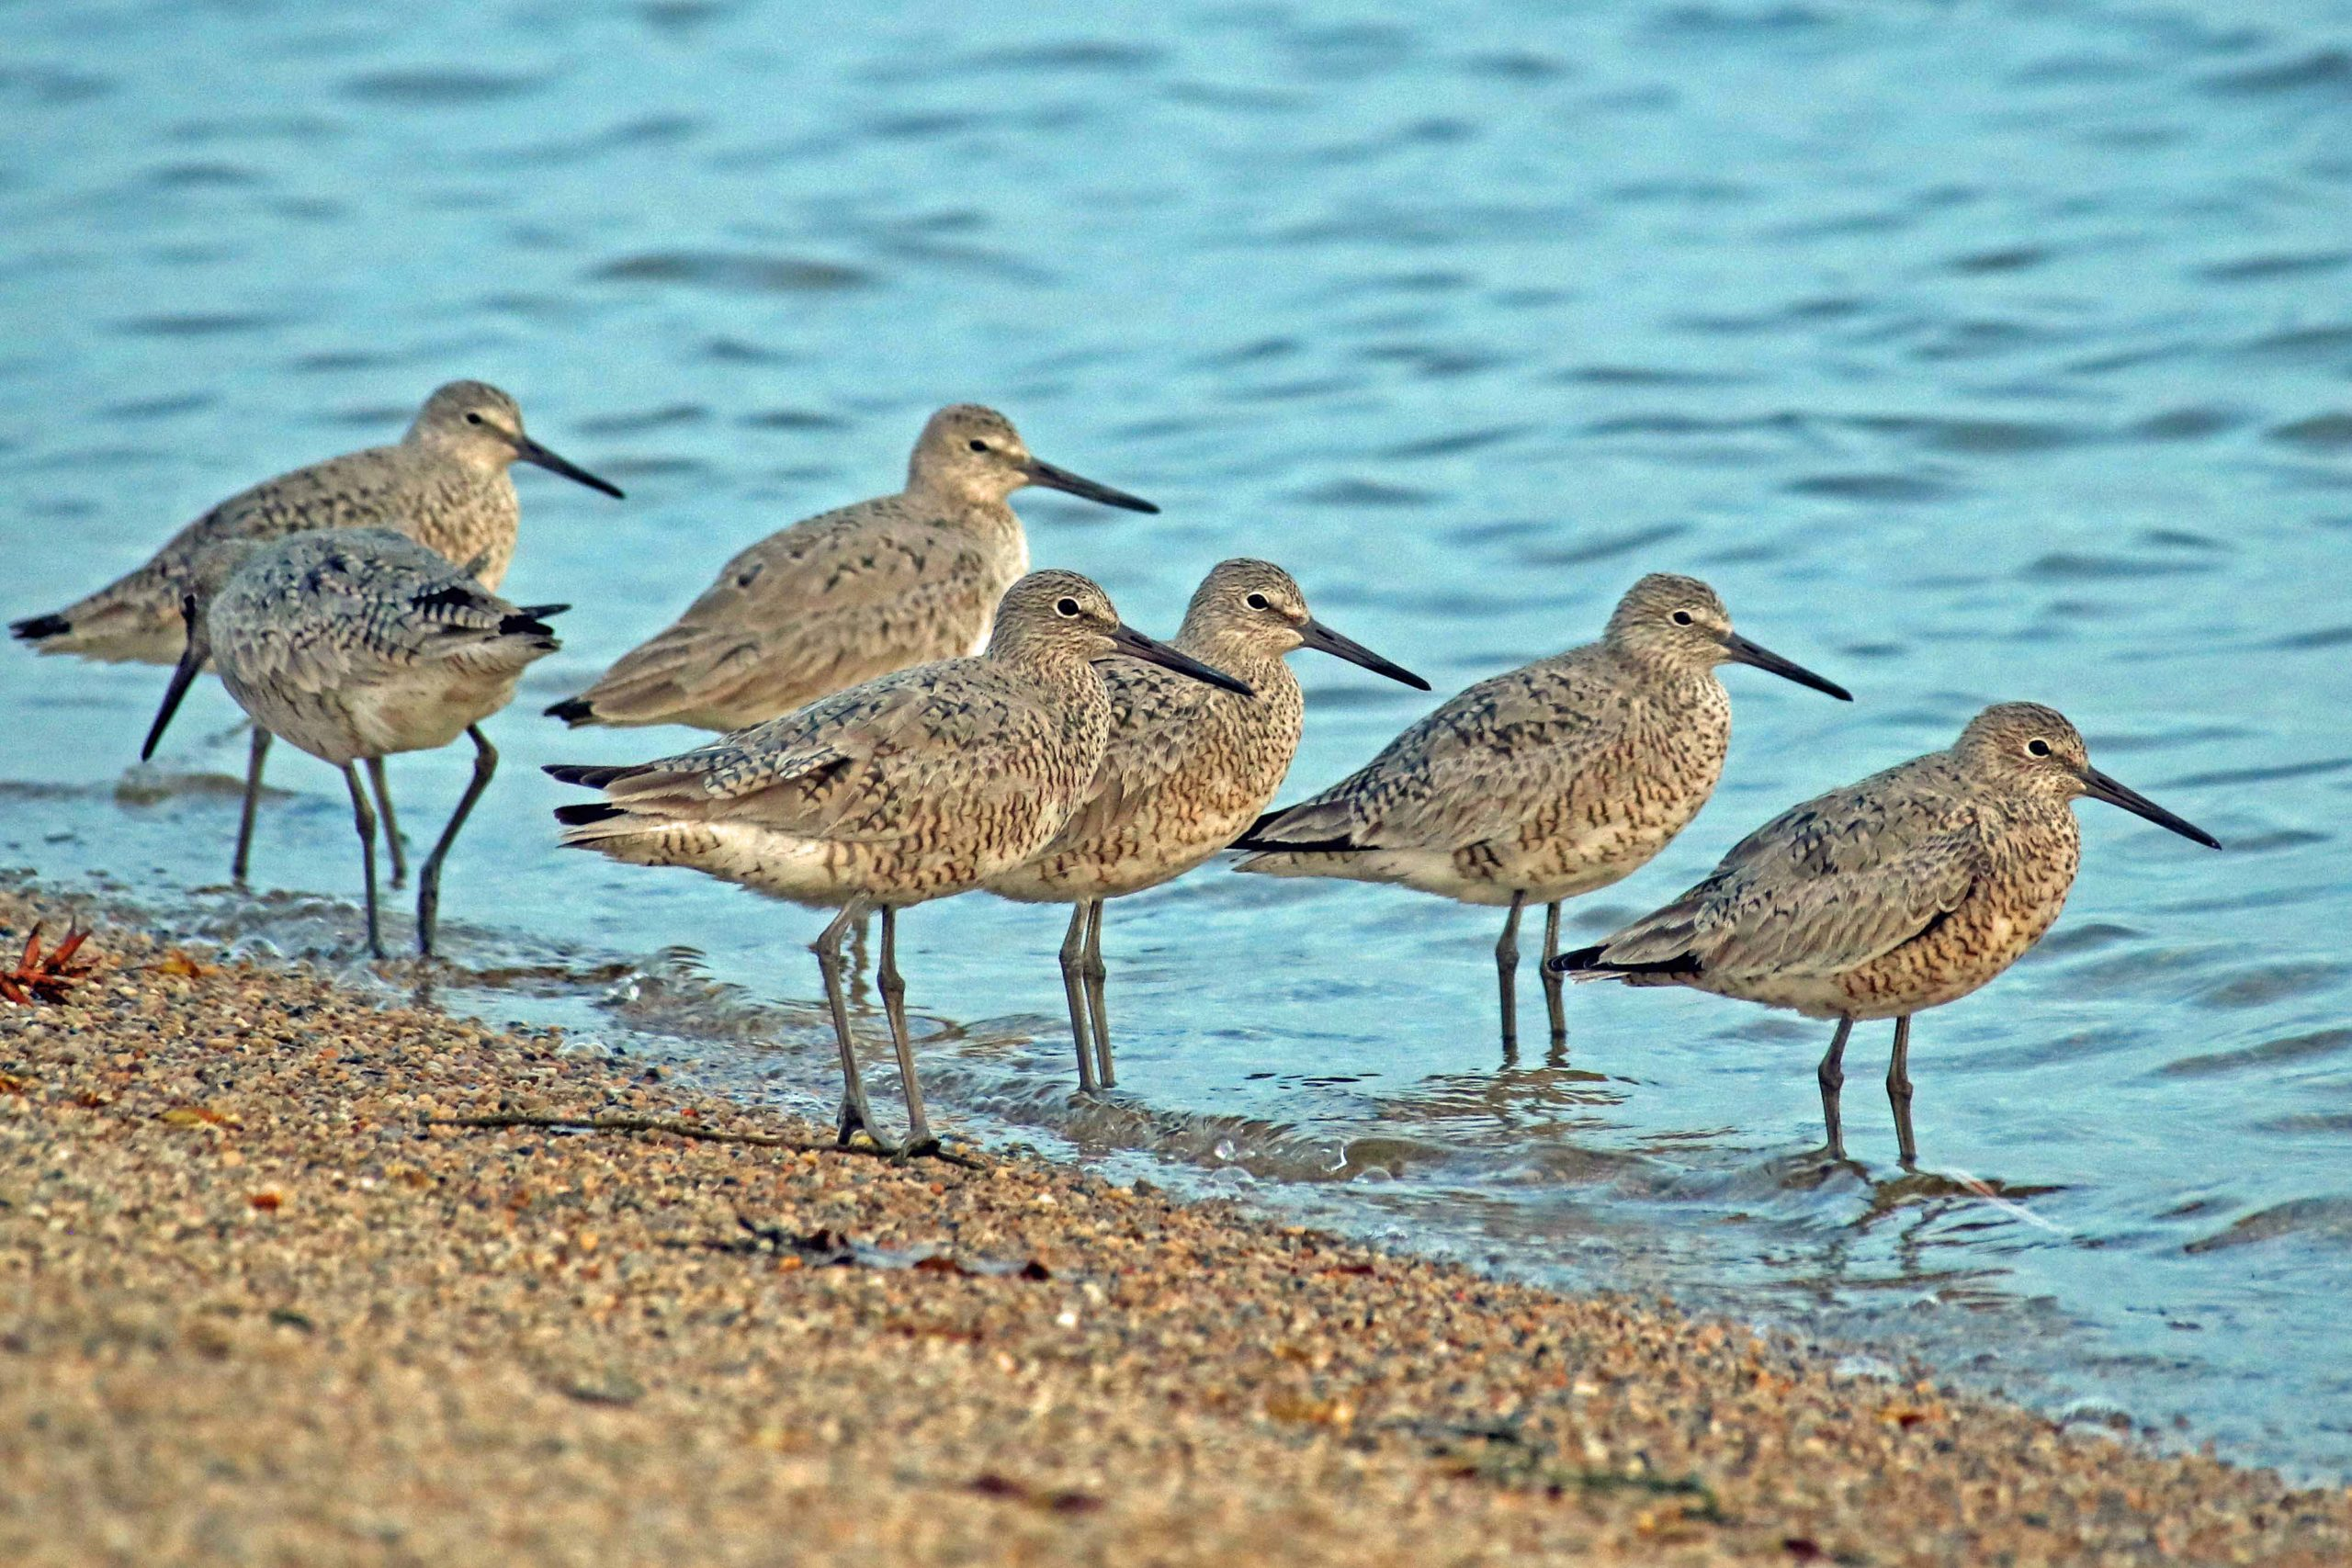 Birds standing on the shore